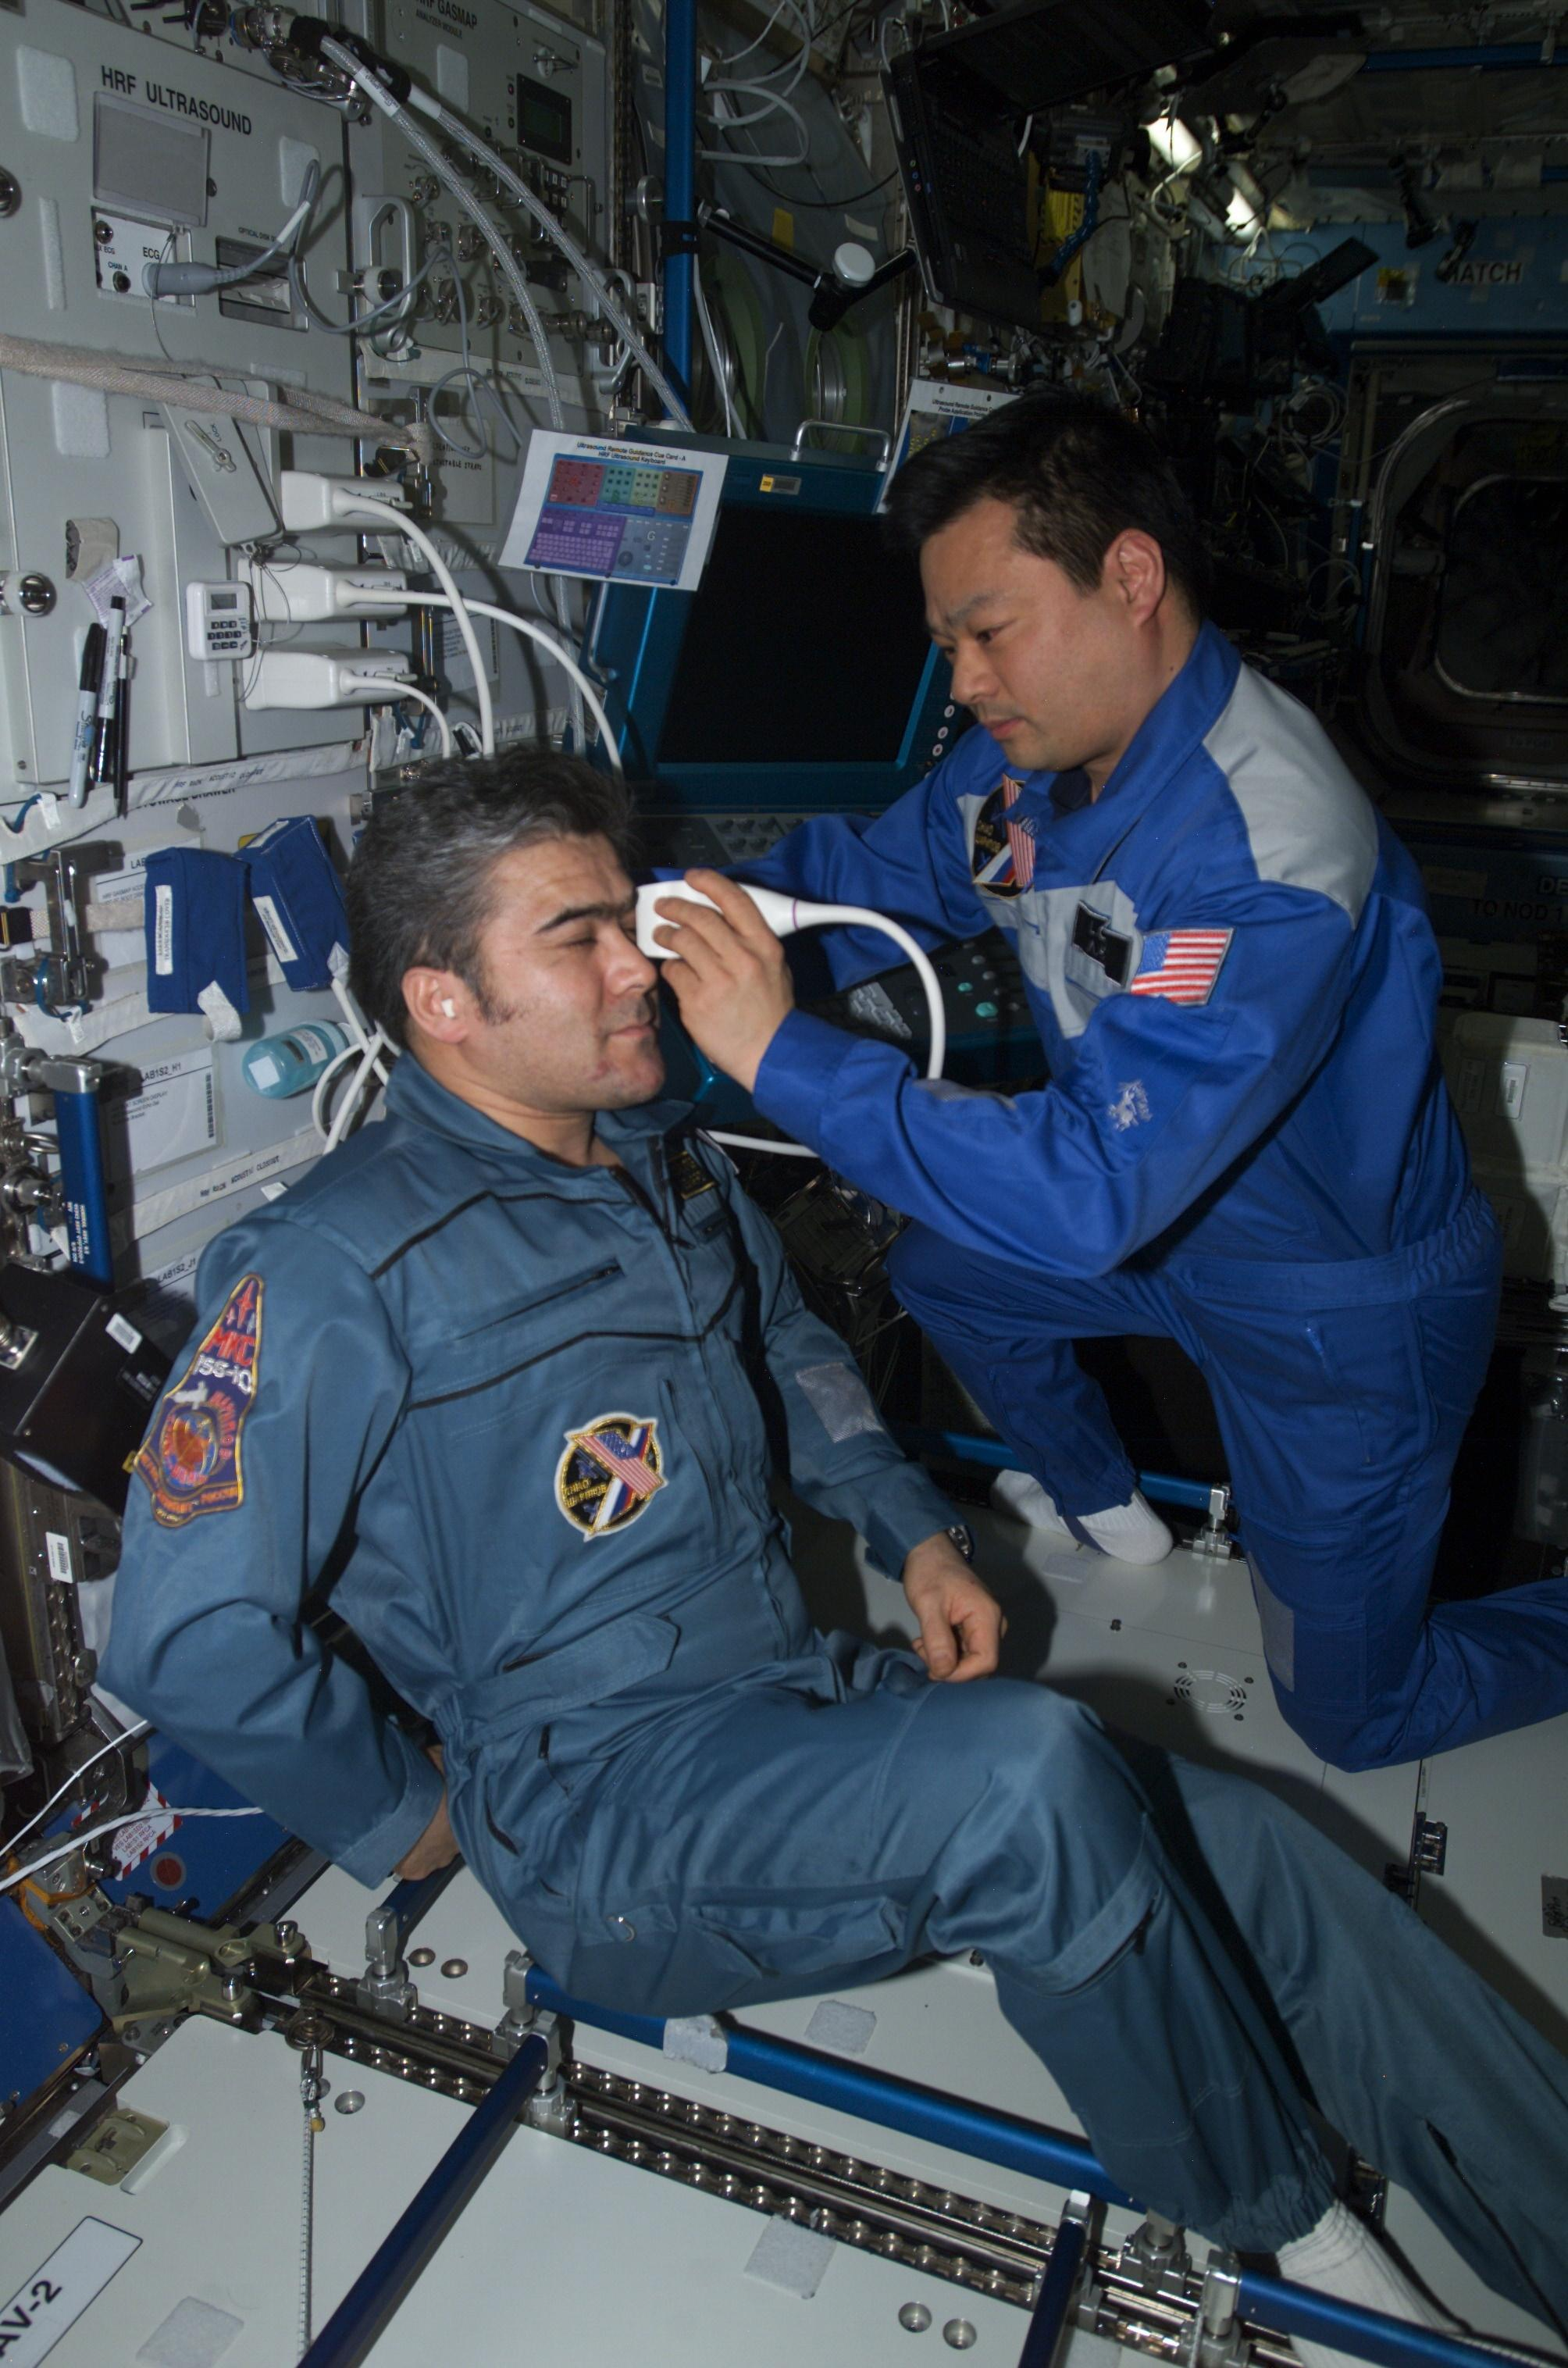 ISS Commander Leroy Chiao performs an ultrasound scan on the eye of Flight Engineer Salizhan Sharipov during ISS Expedition 10 (Credits: NASA).